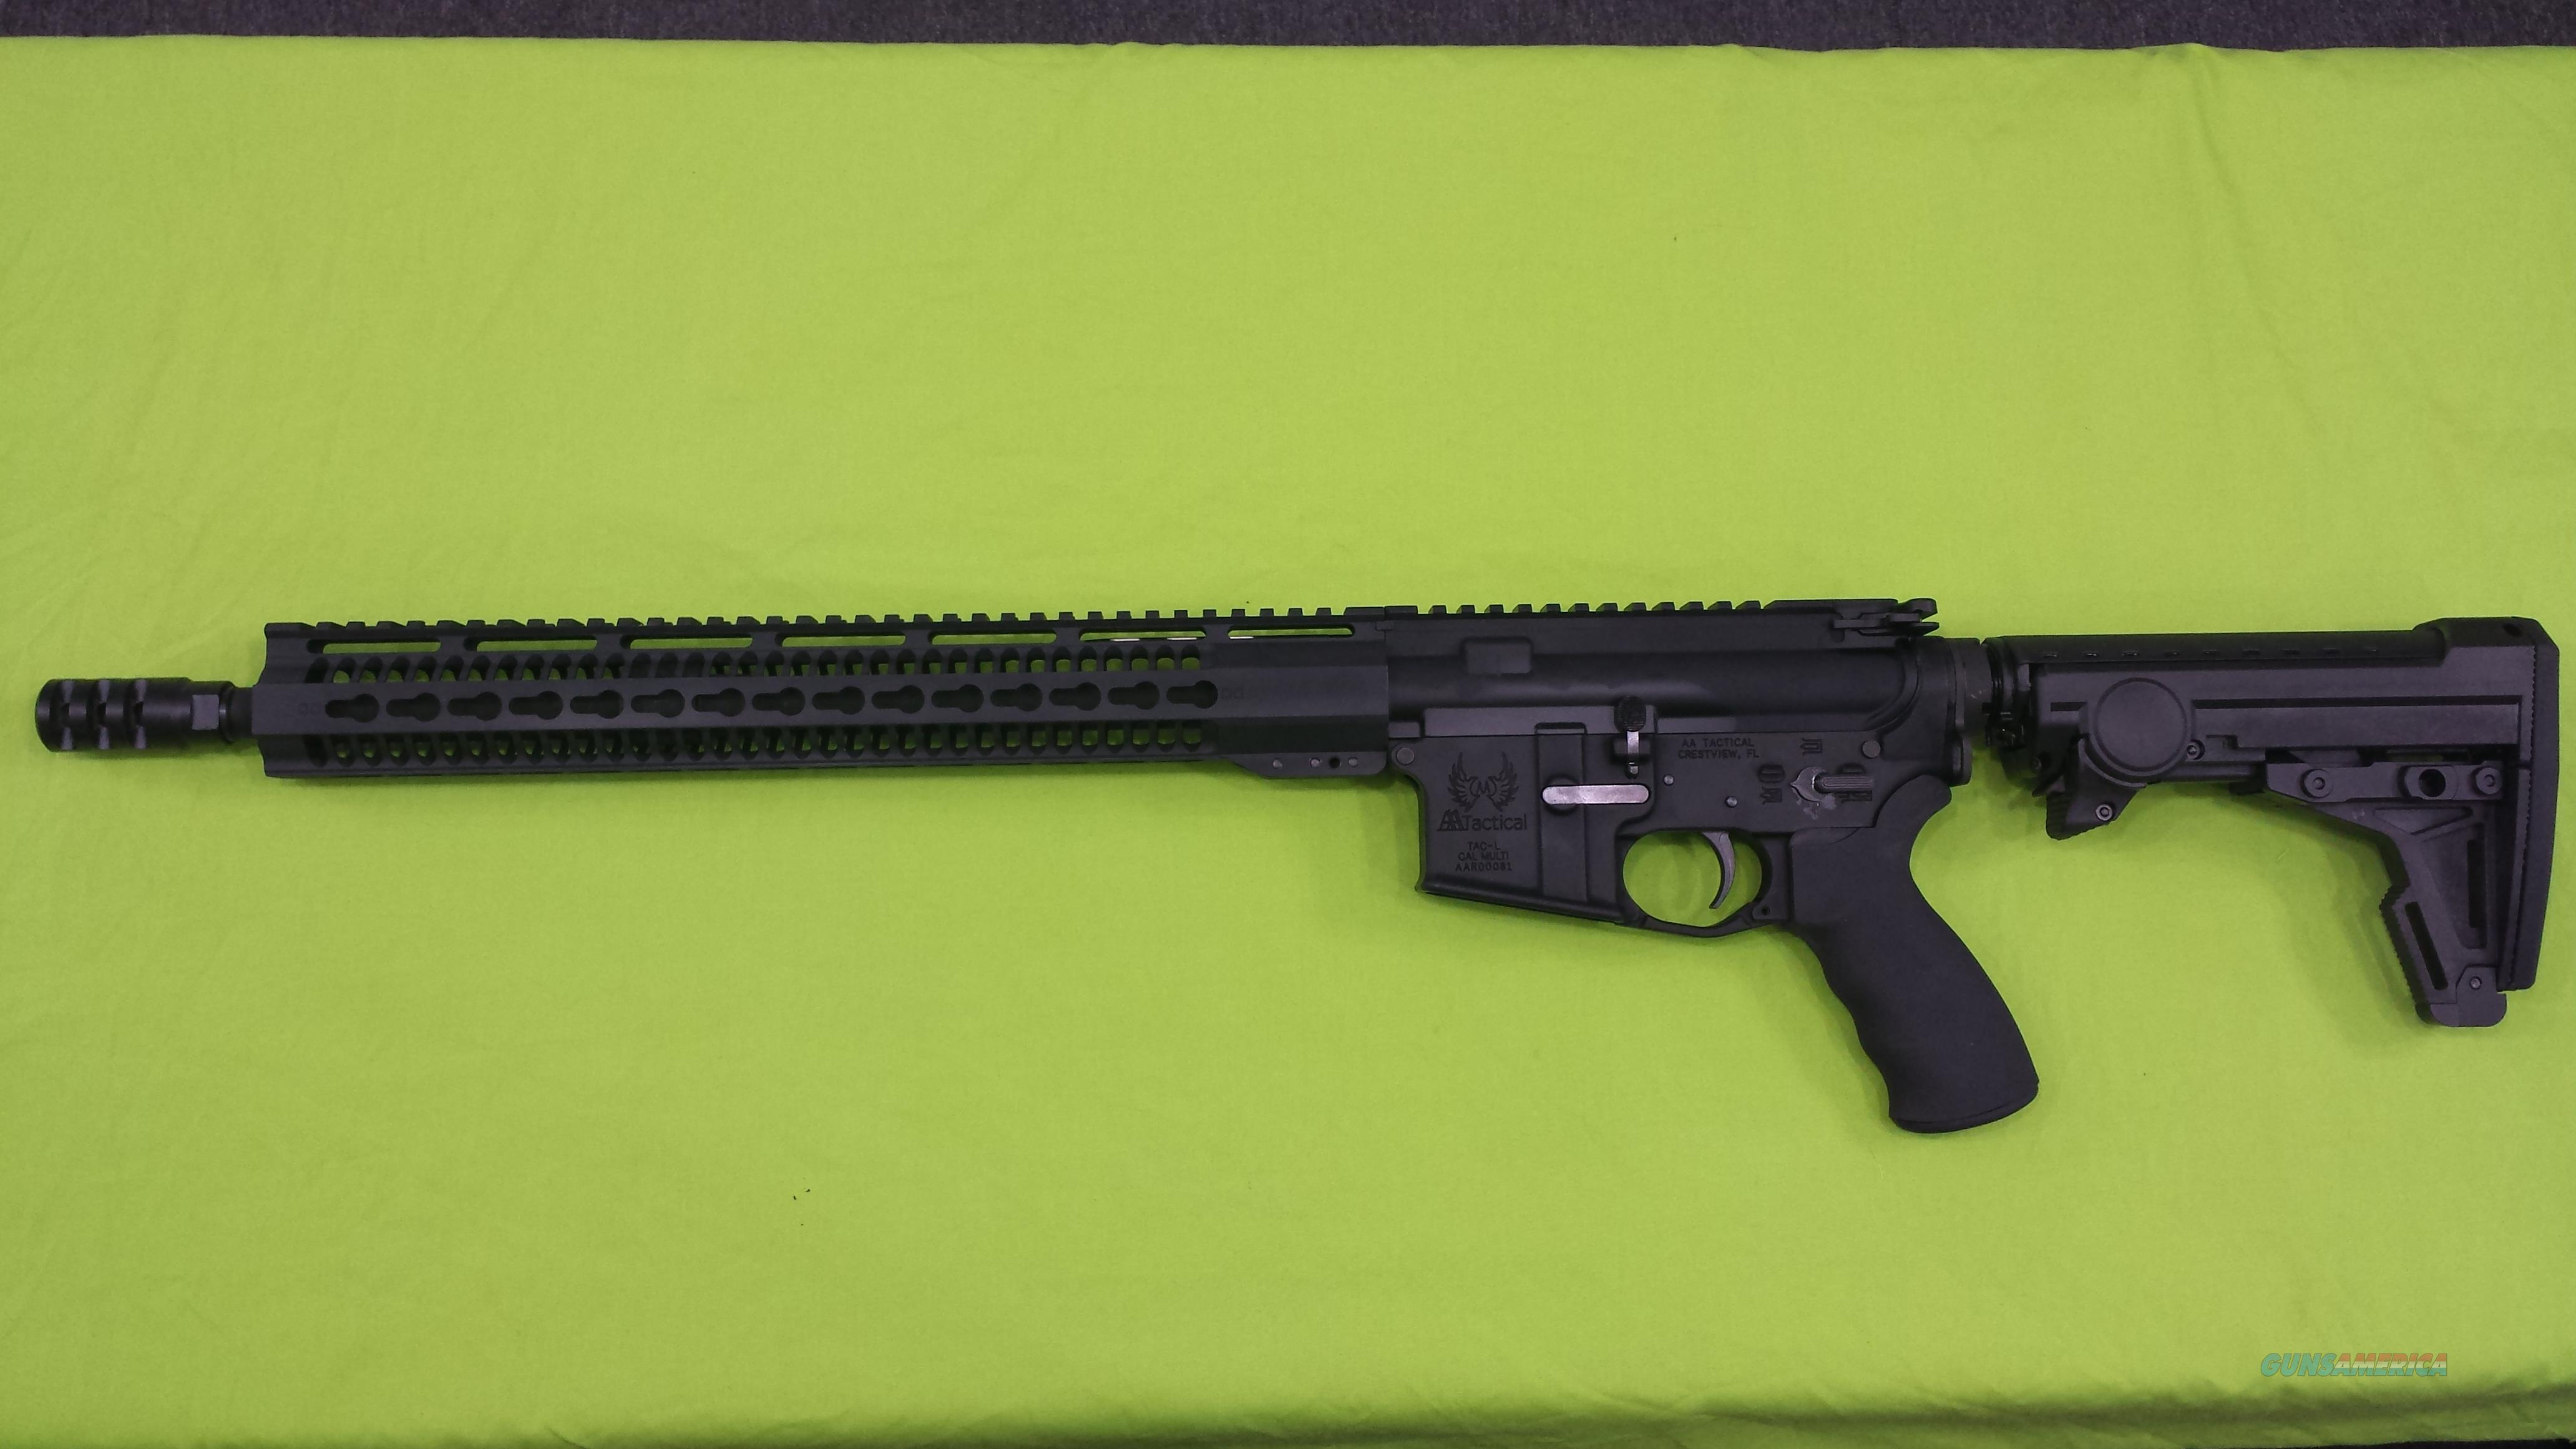 AA TACTICAL TAC-L 5.56 223 ERGO 8 POS BLACK AR15   Guns > Rifles > AR-15 Rifles - Small Manufacturers > Complete Rifle